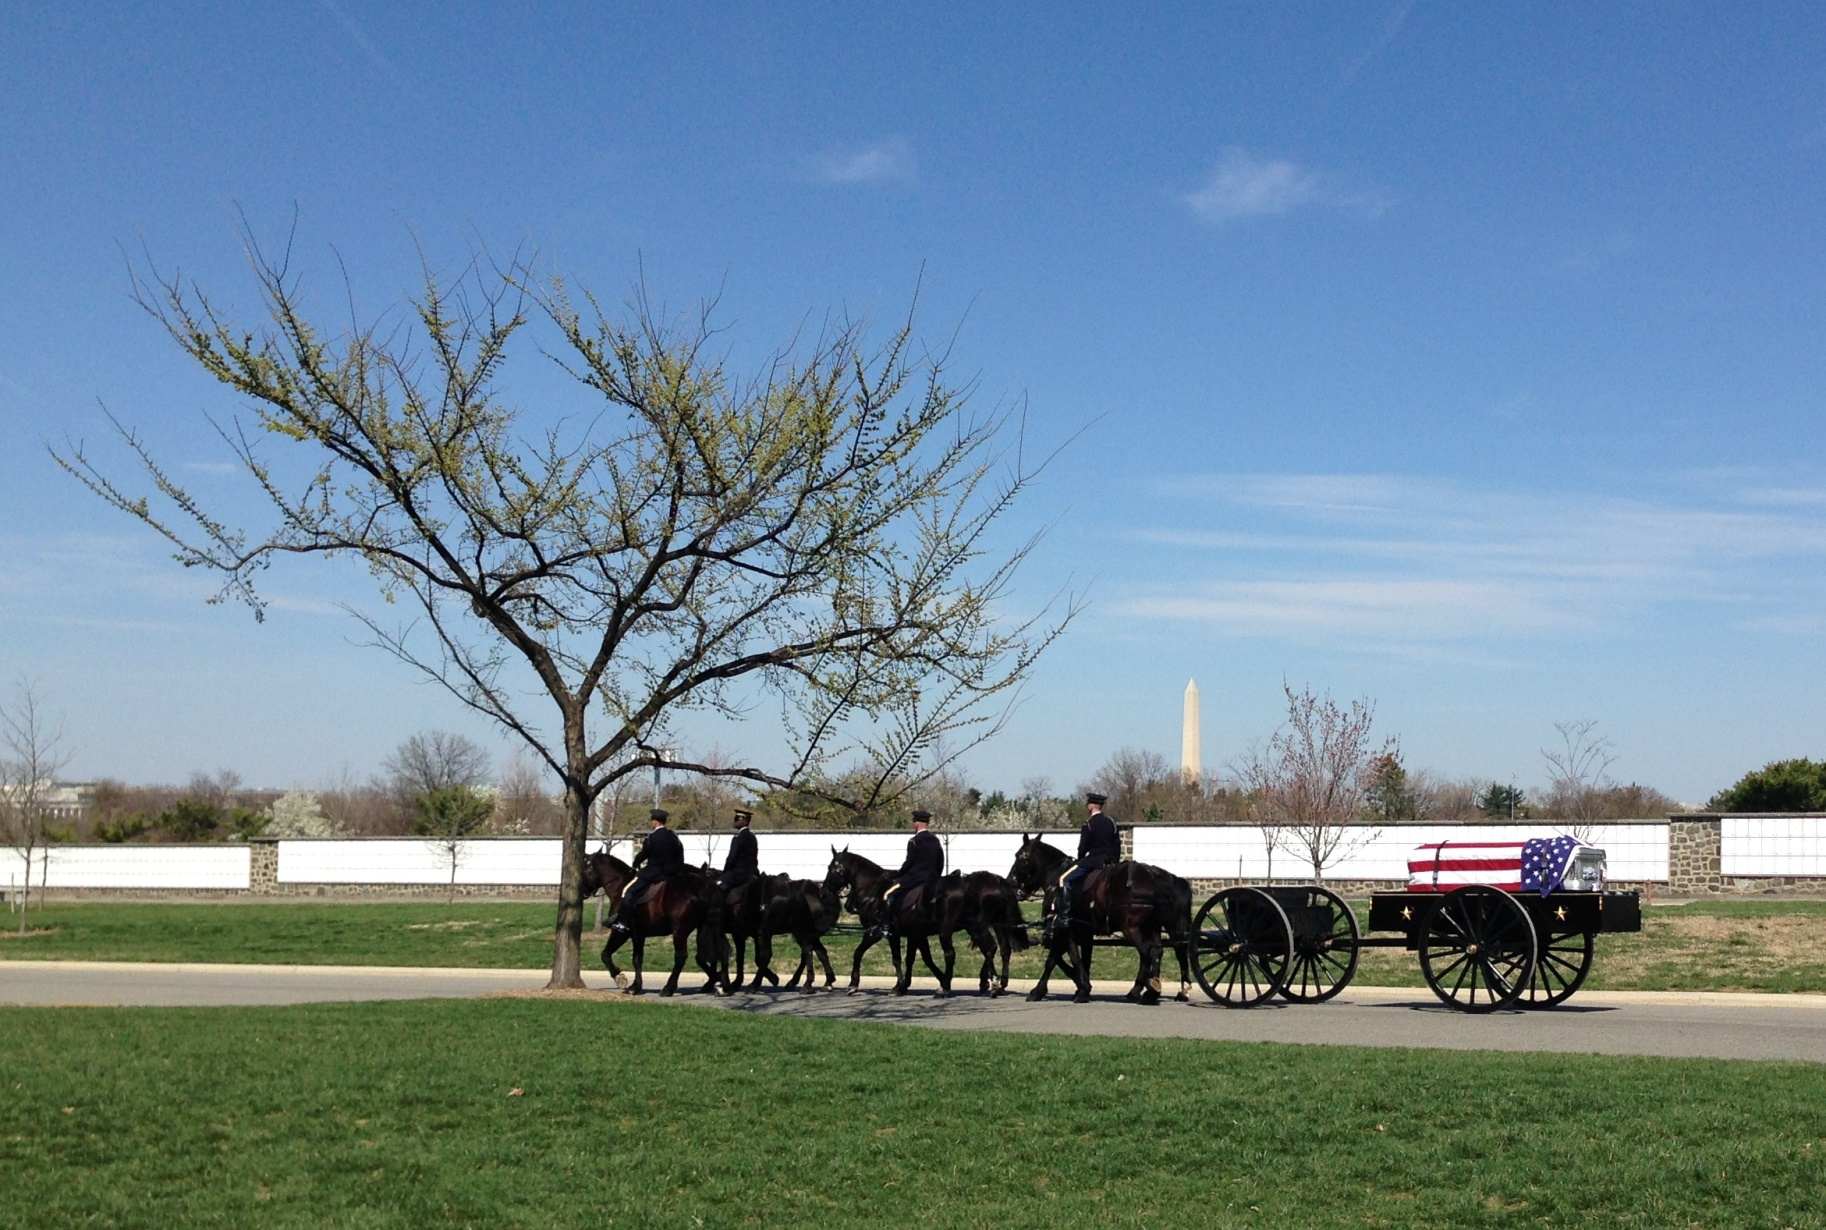 caisson at Dora Dougherty Stothers funeral service at Arlington National Cemetery April 2014